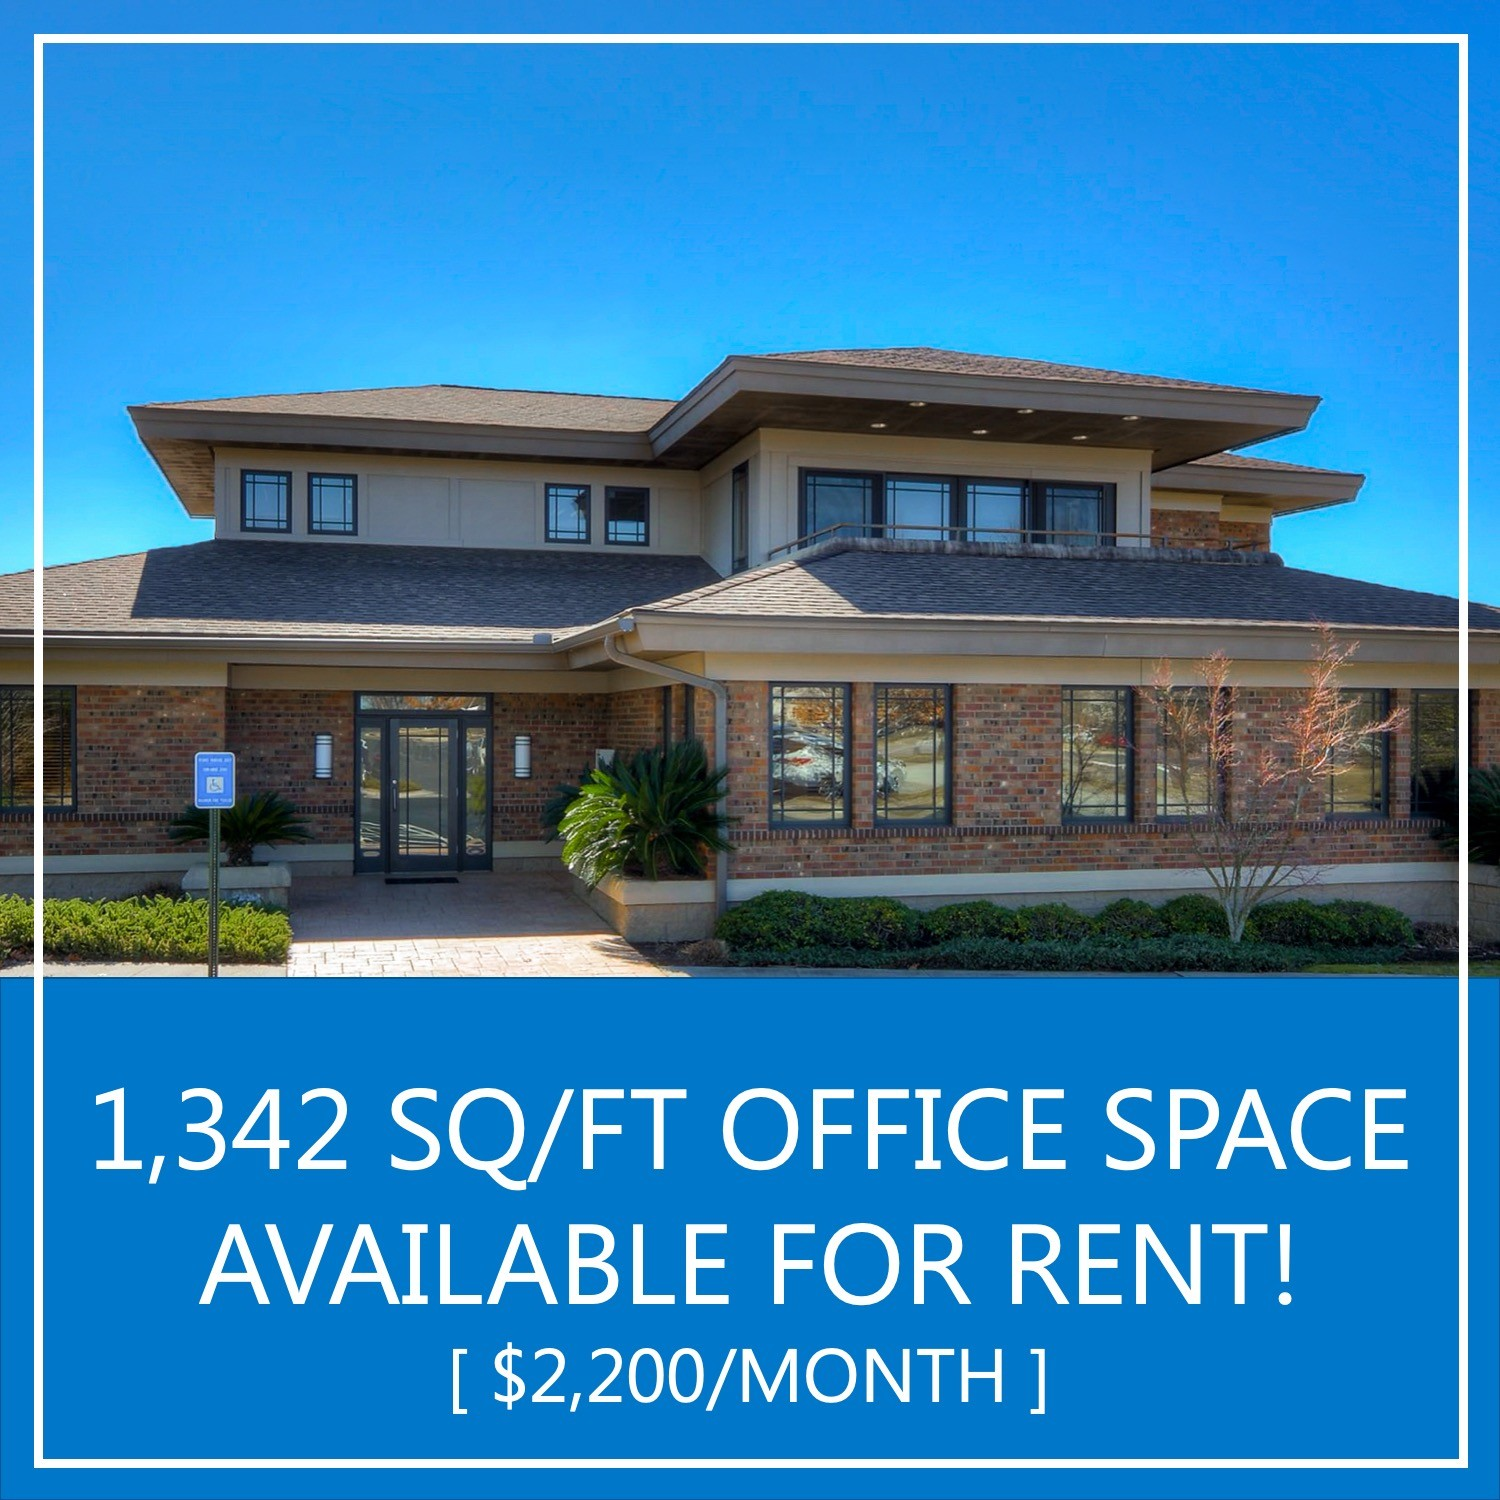 Office Space Available for Rent!